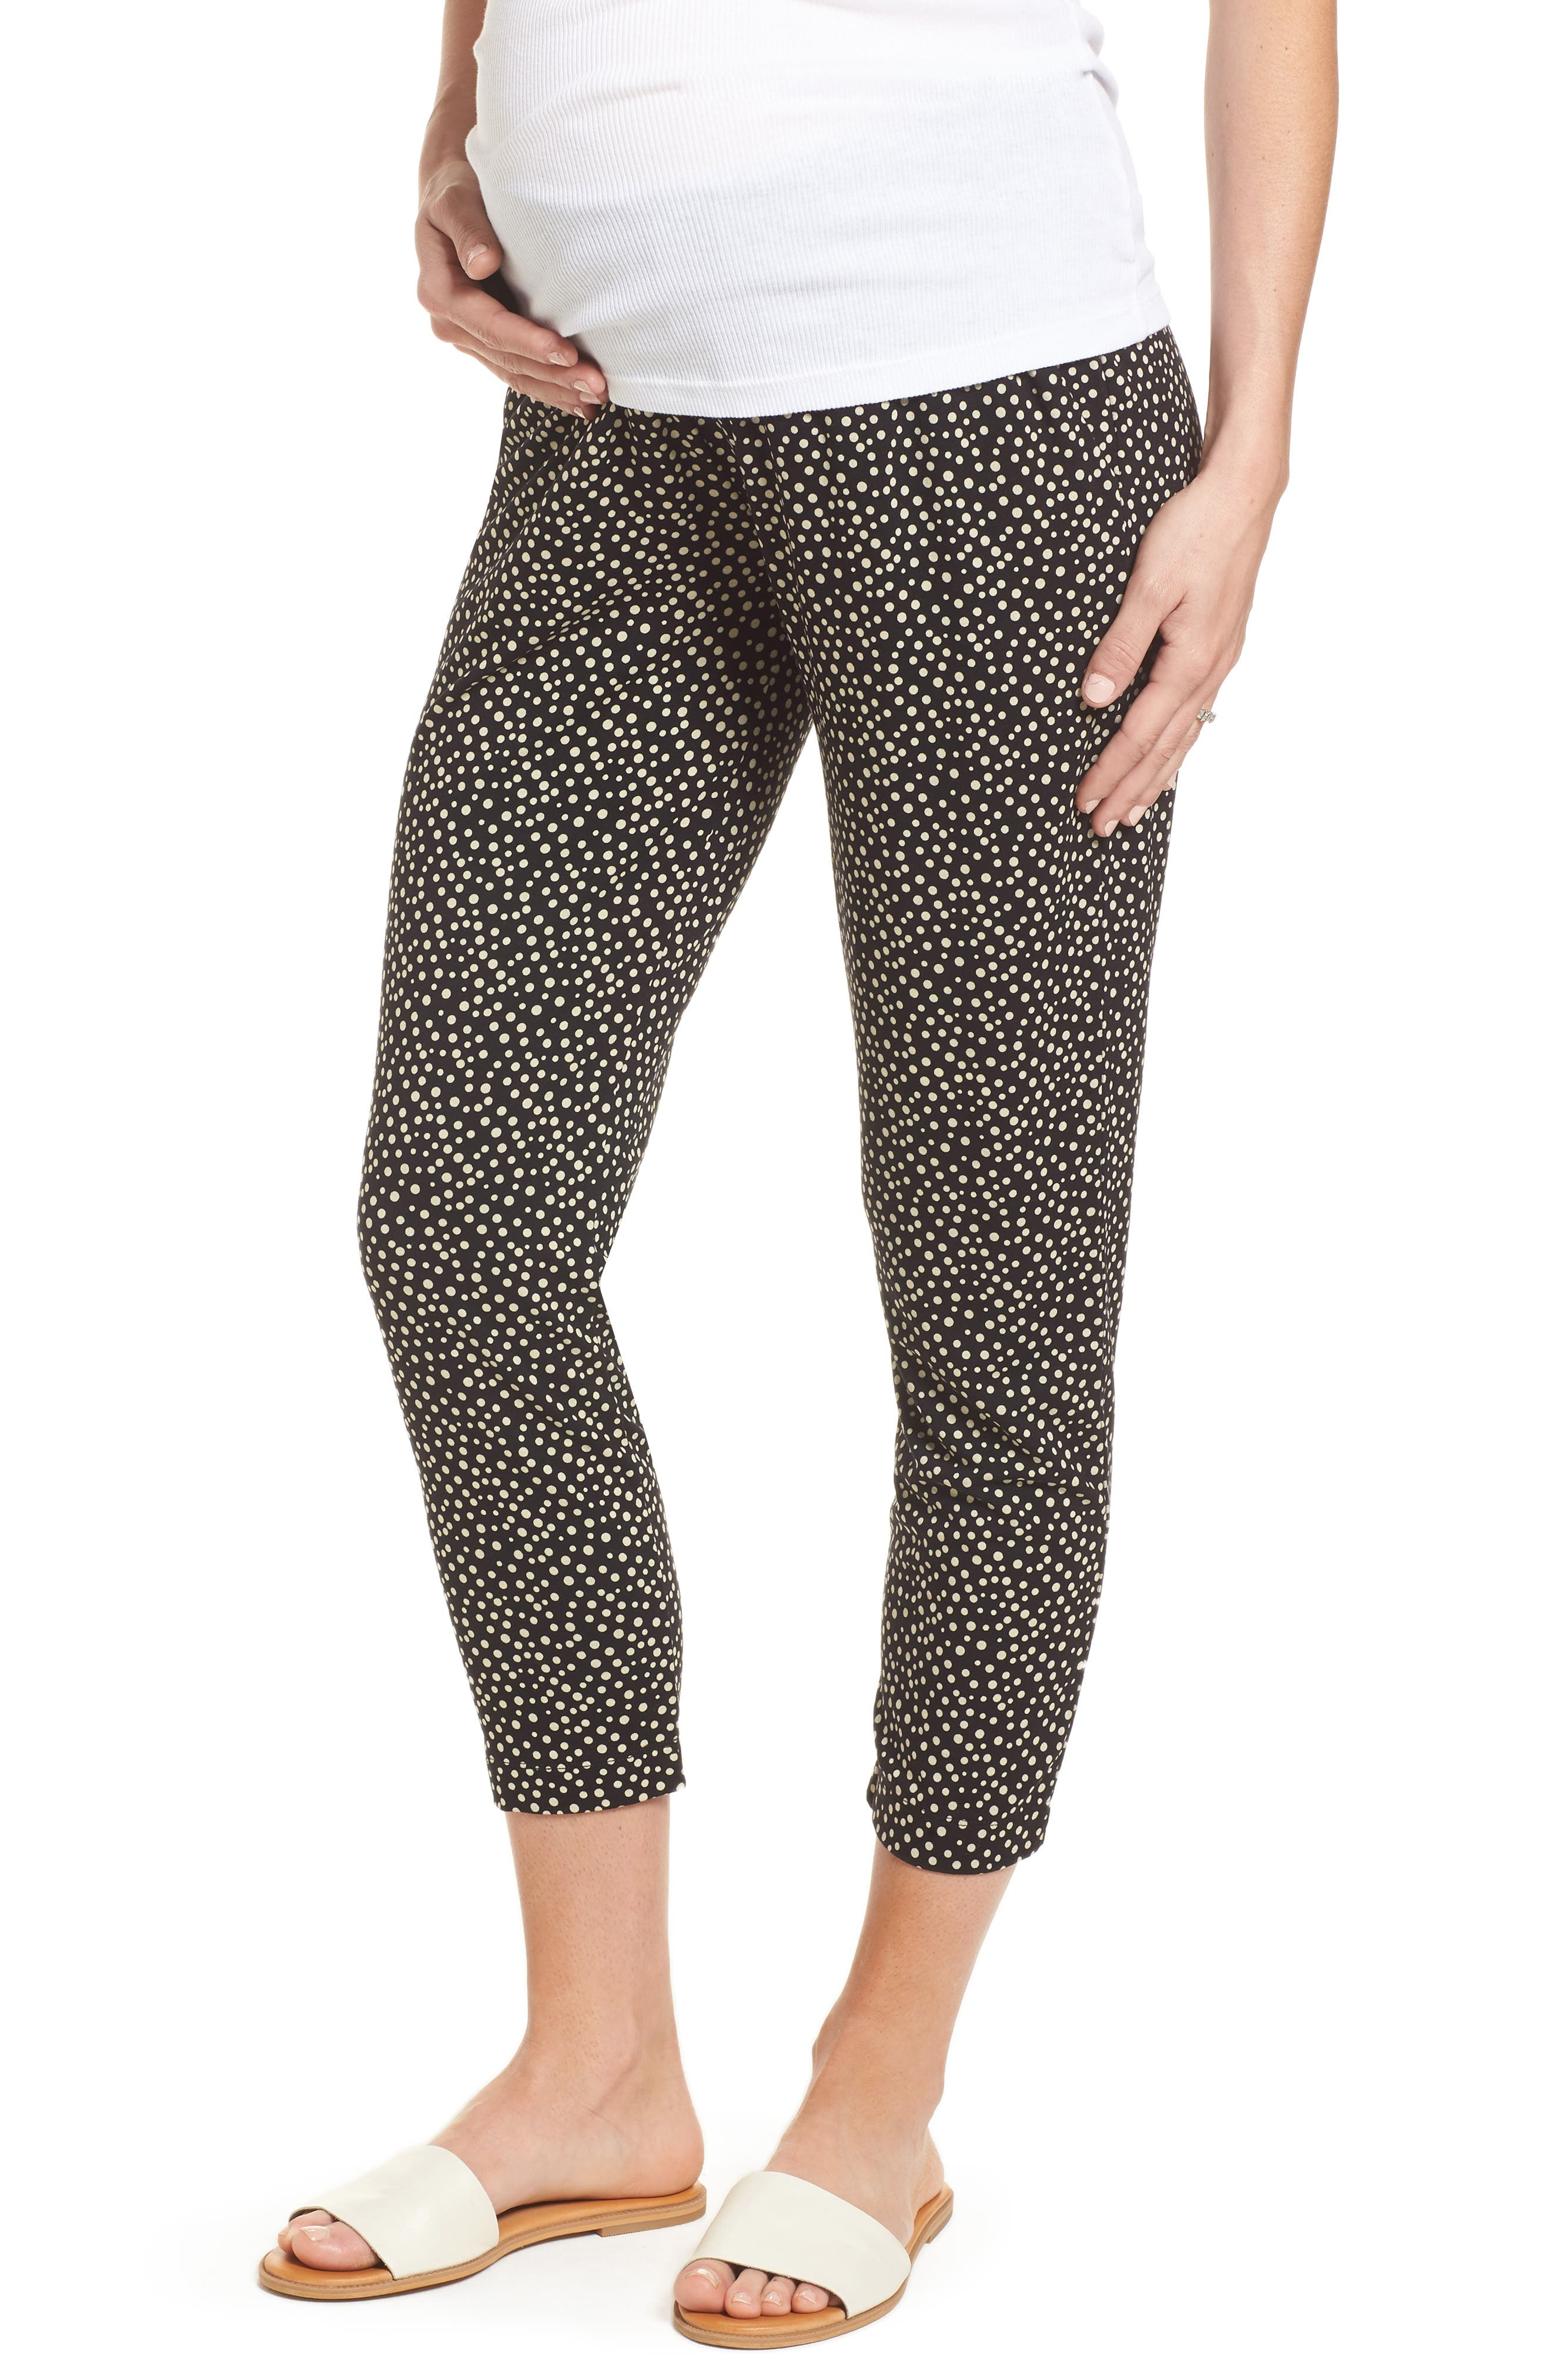 Danni Maternity Tapered Trousers,                         Main,                         color, Polka Print